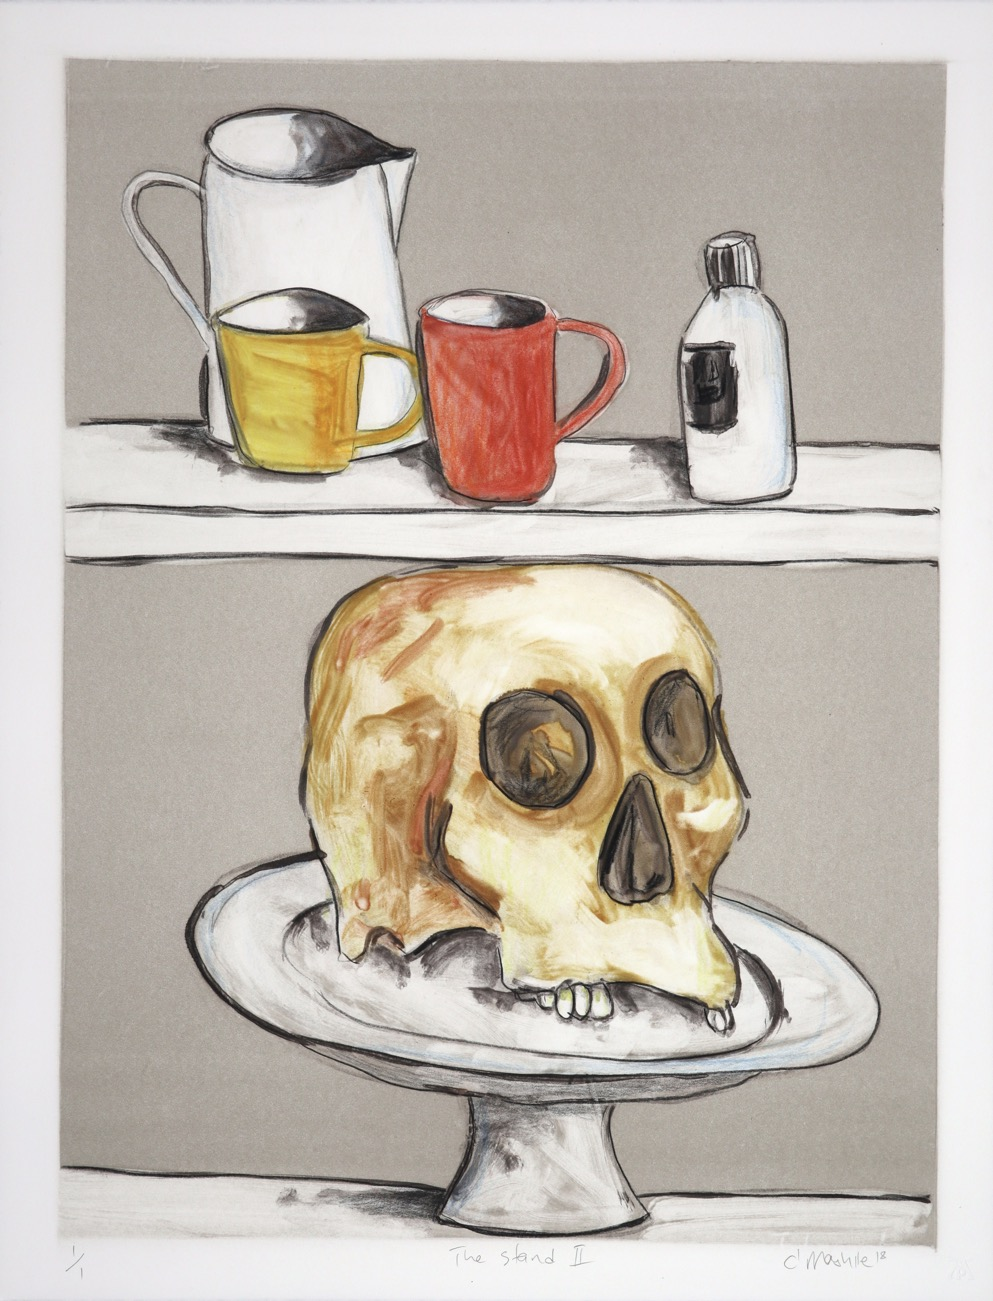 Two kitchen shelves holding cups, jar bottle and on bottom shelf cake stand with human skull